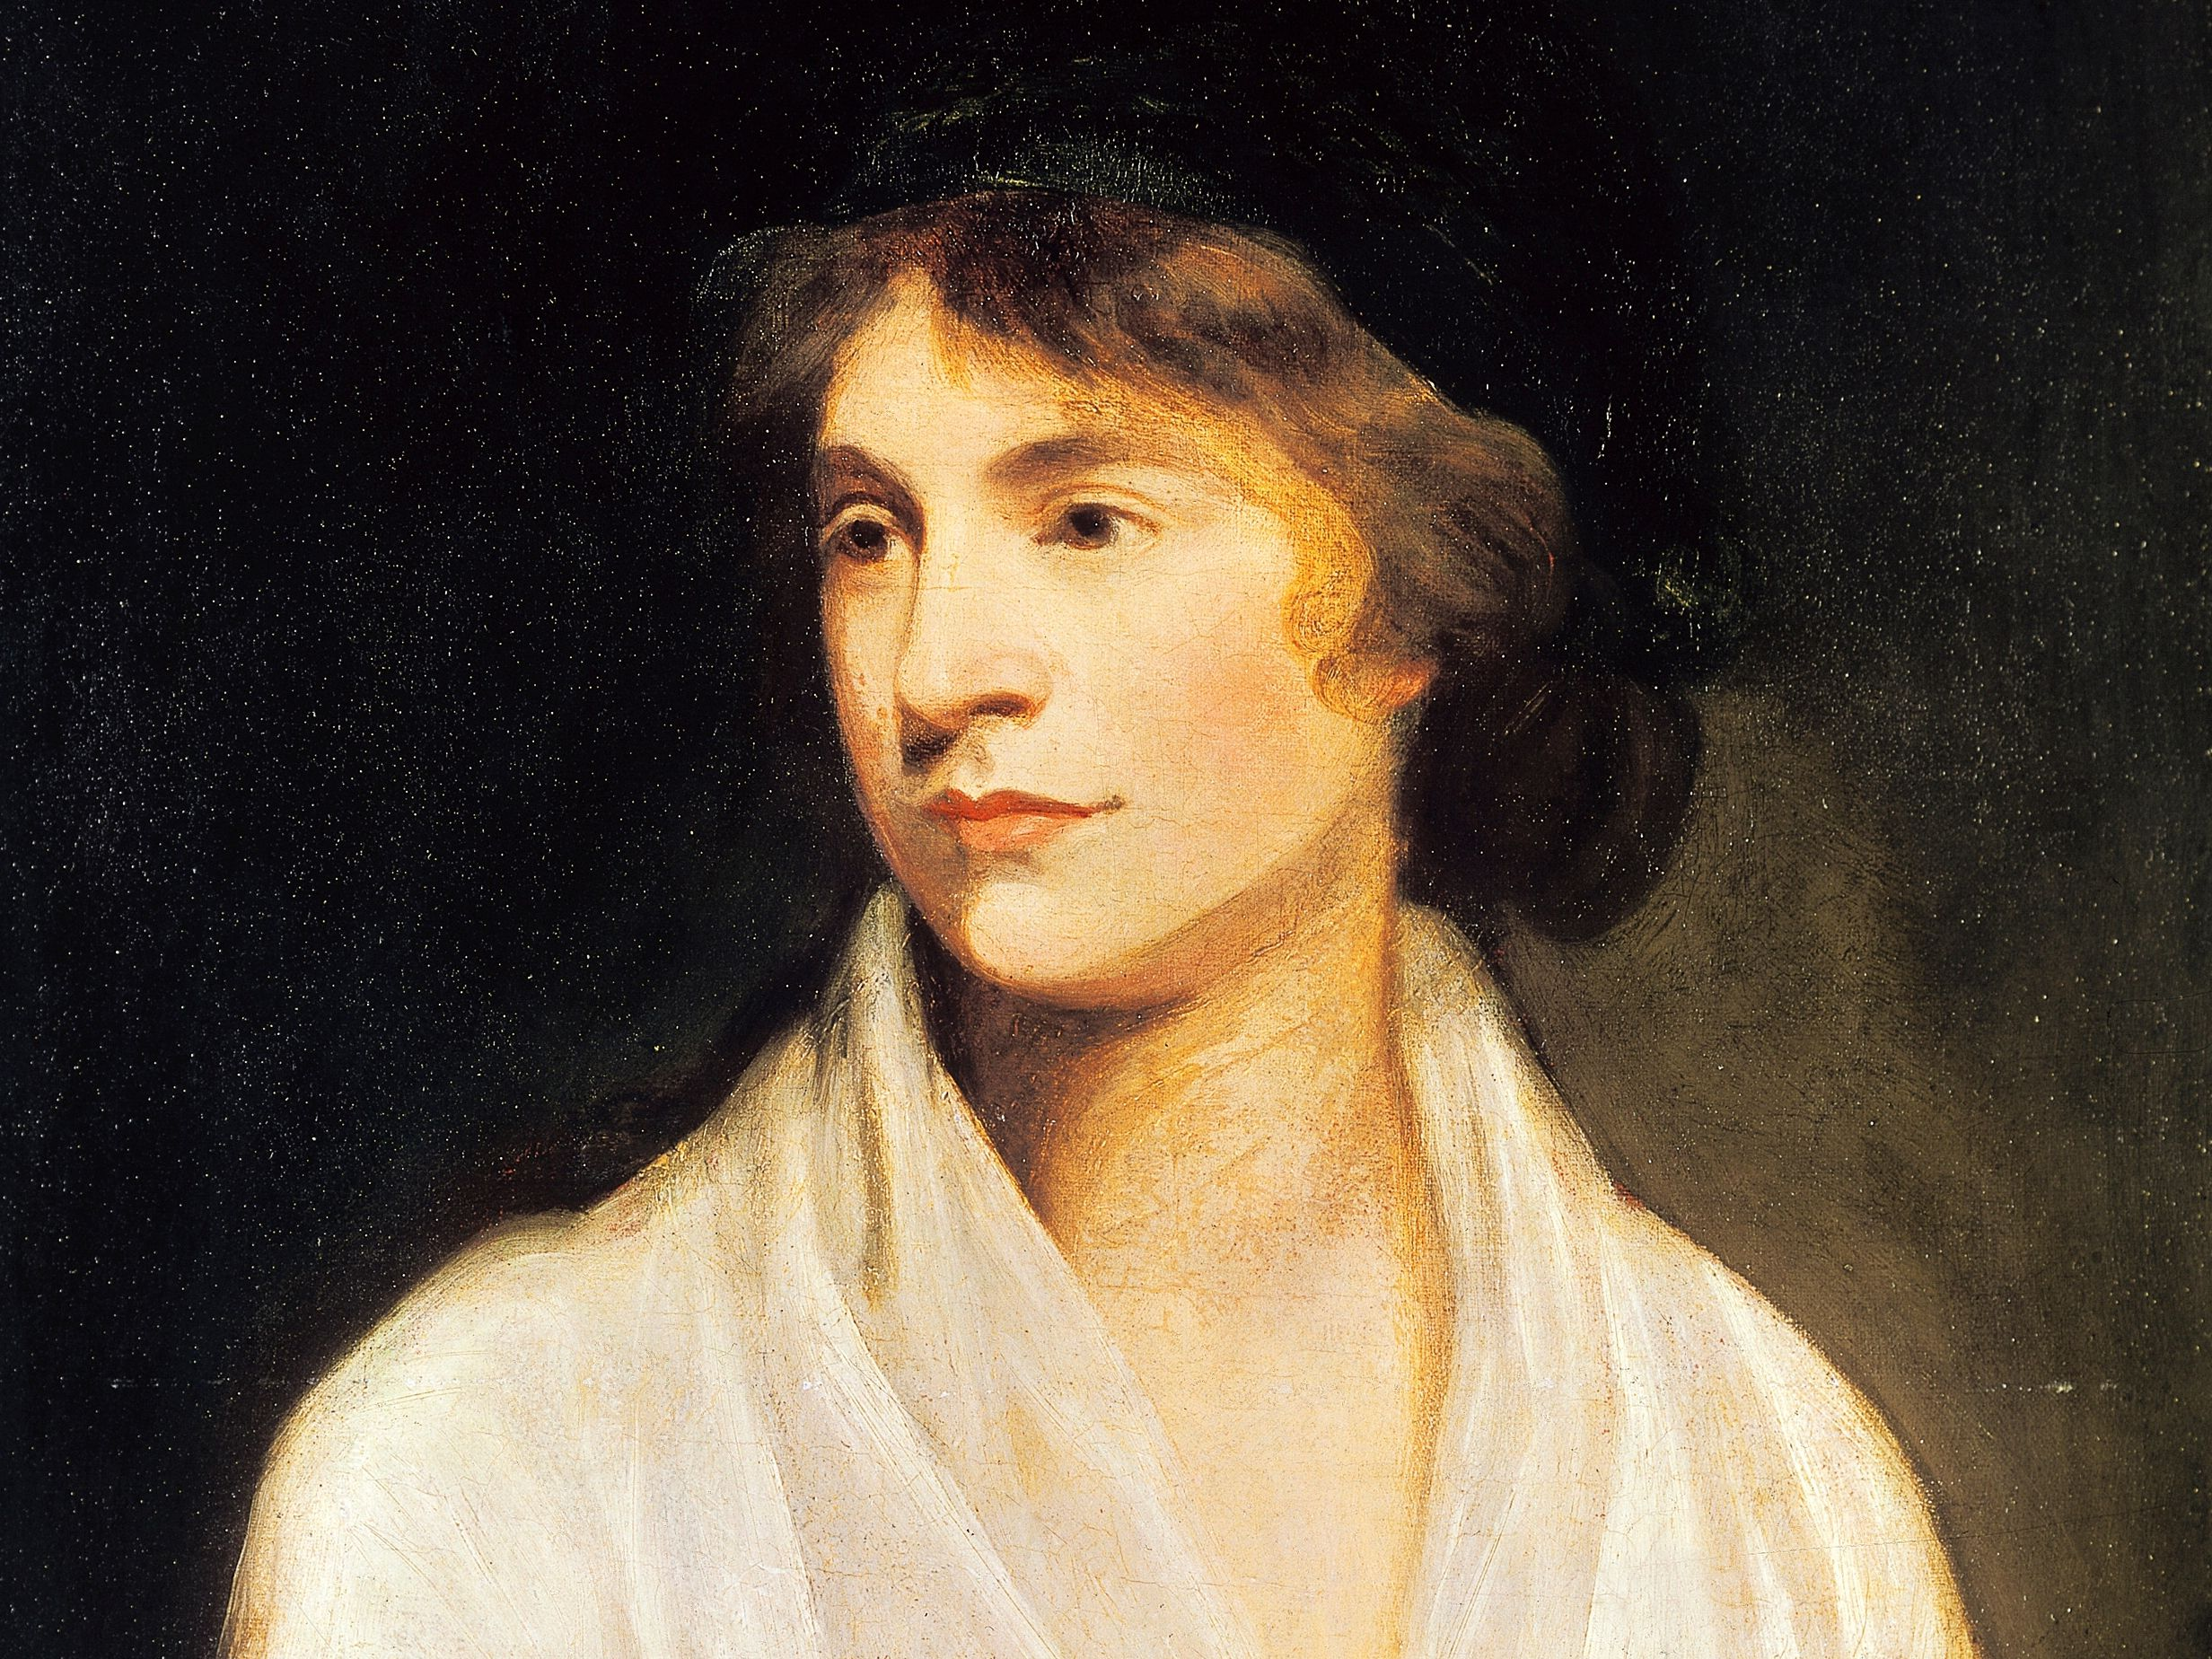 Mary Wollstonecraft's Life of Thirty-Eight Years